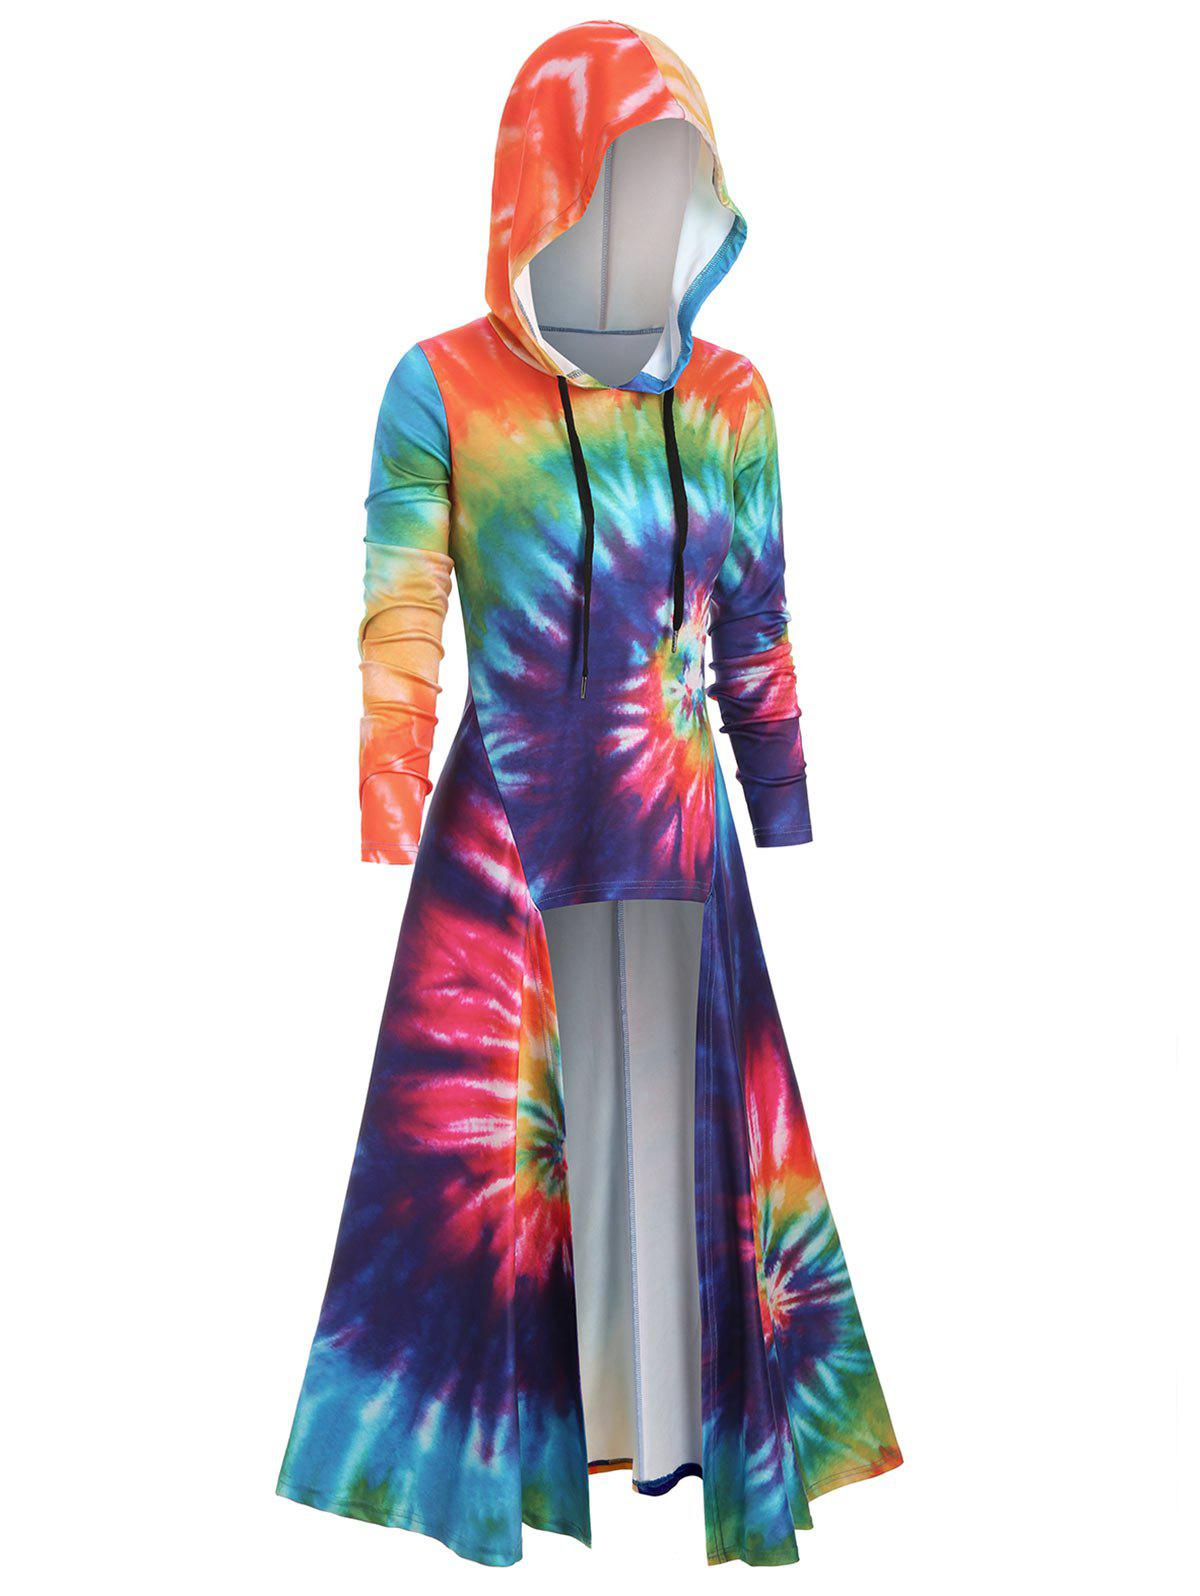 Discount Hooded Spiral Tie Dye Print Maxi Top